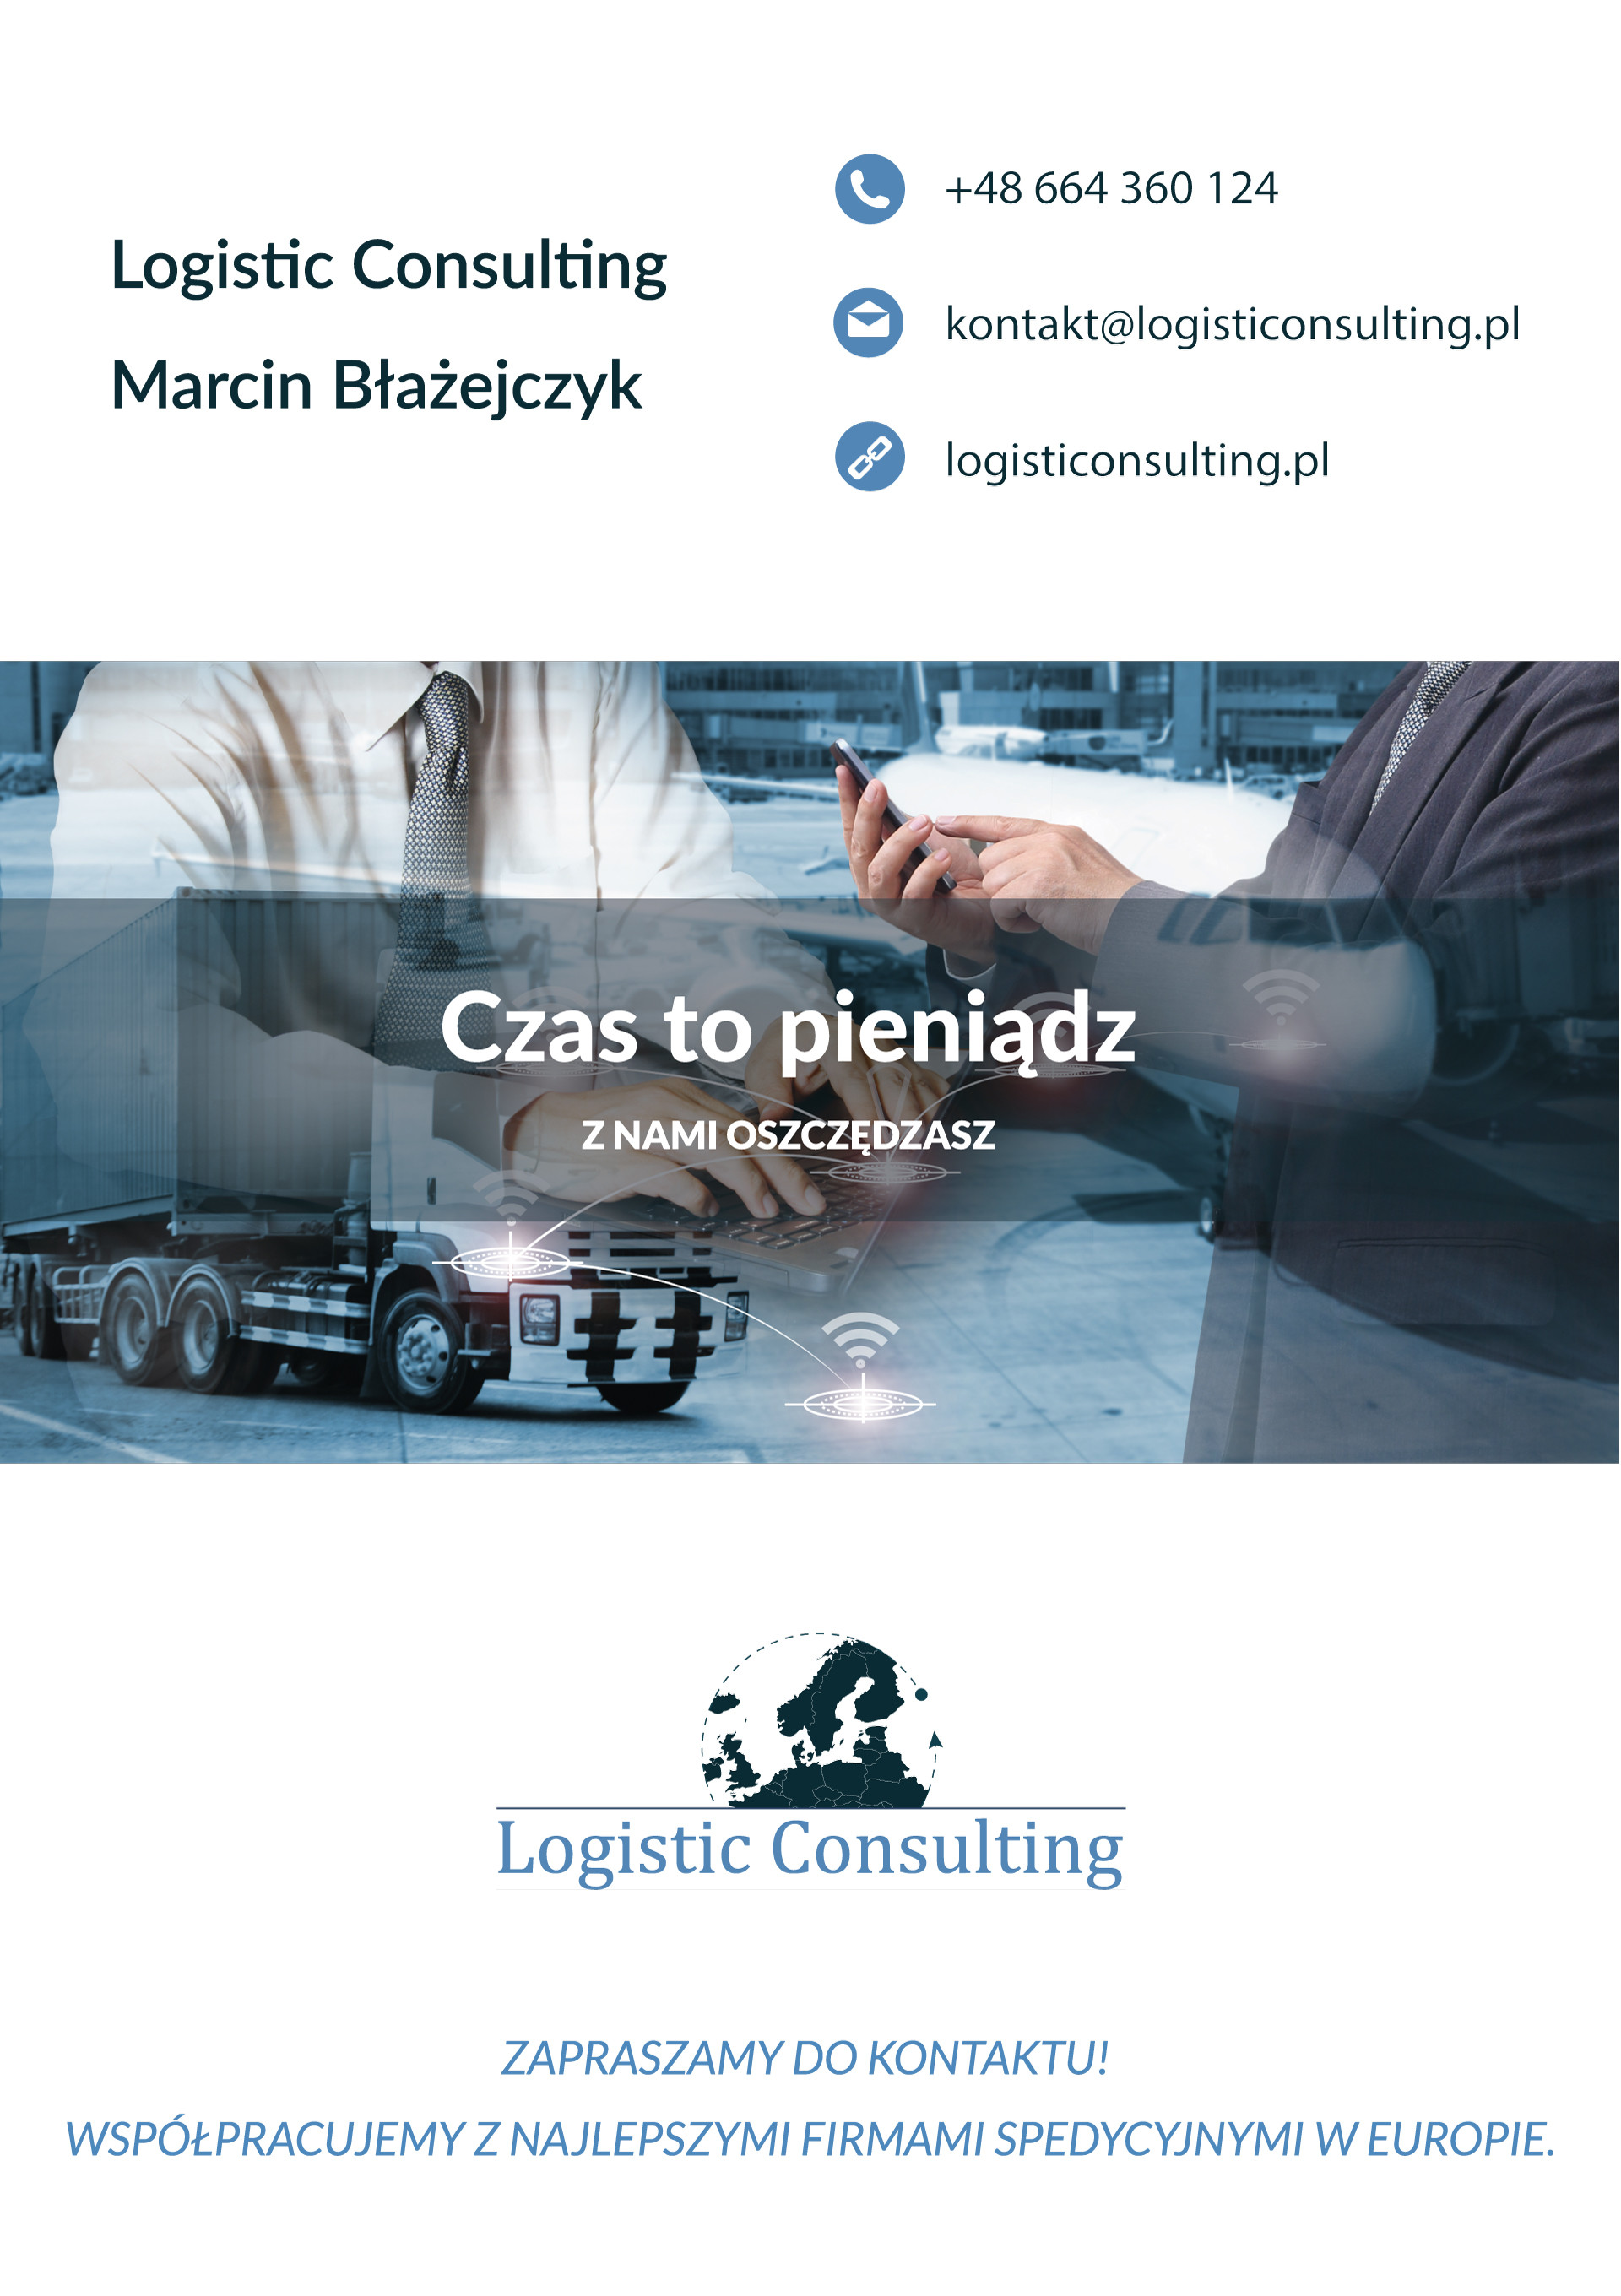 ulotka Logistic Consulting 1